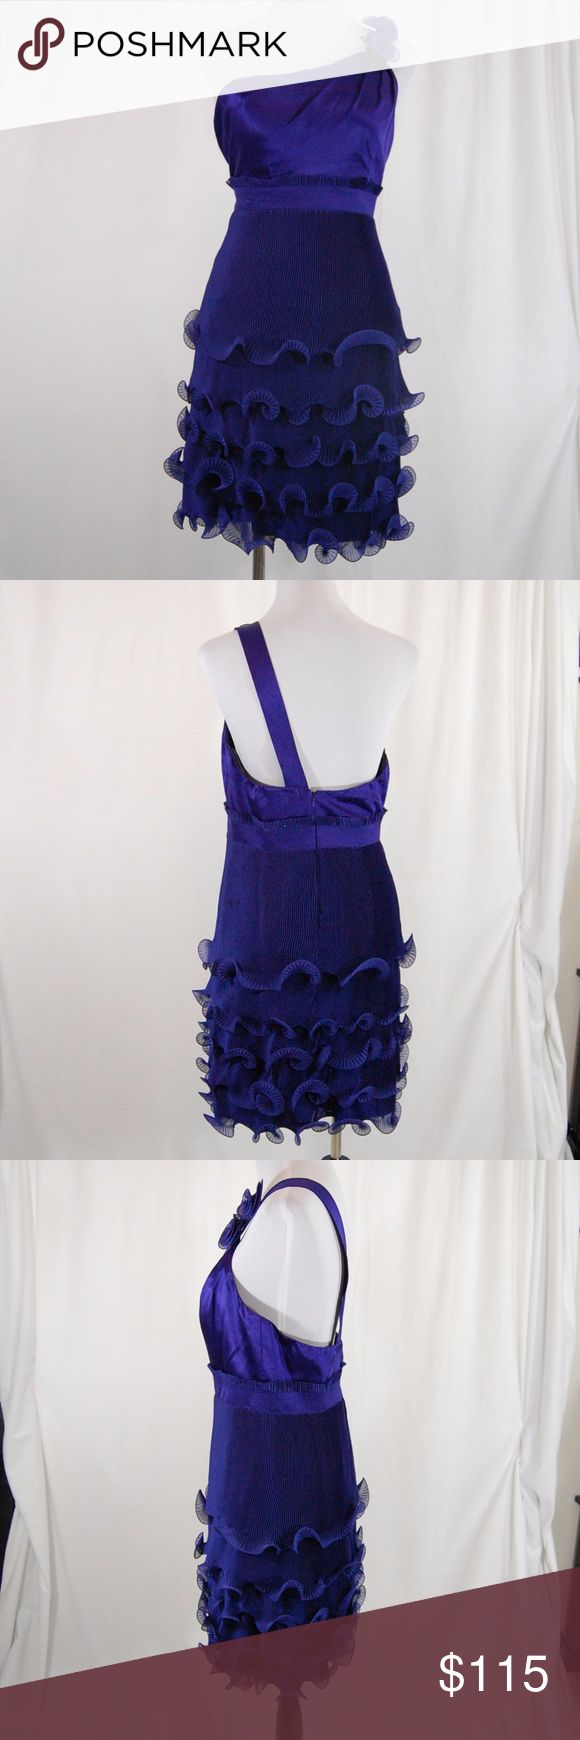 """Special Occasion One Shoulder Purple Dress Phoebe Couture (at Neiman Marcus).  100% silk. Back zipper. Lined. Built in bust cups.  Vertical folds and ruffle skirt is super flattering. One shoulder with flowers on the strap.  Excellent condition - worn once and dry cleaned. There is a small (less than 1/2 inch) black mark on a layer of ruffle at the skirt. Impossible to see unless looking for it (see pic with arrow).  Approx Measurements (taken flat): Length (shoulder of strap to hem) = 39""""…"""